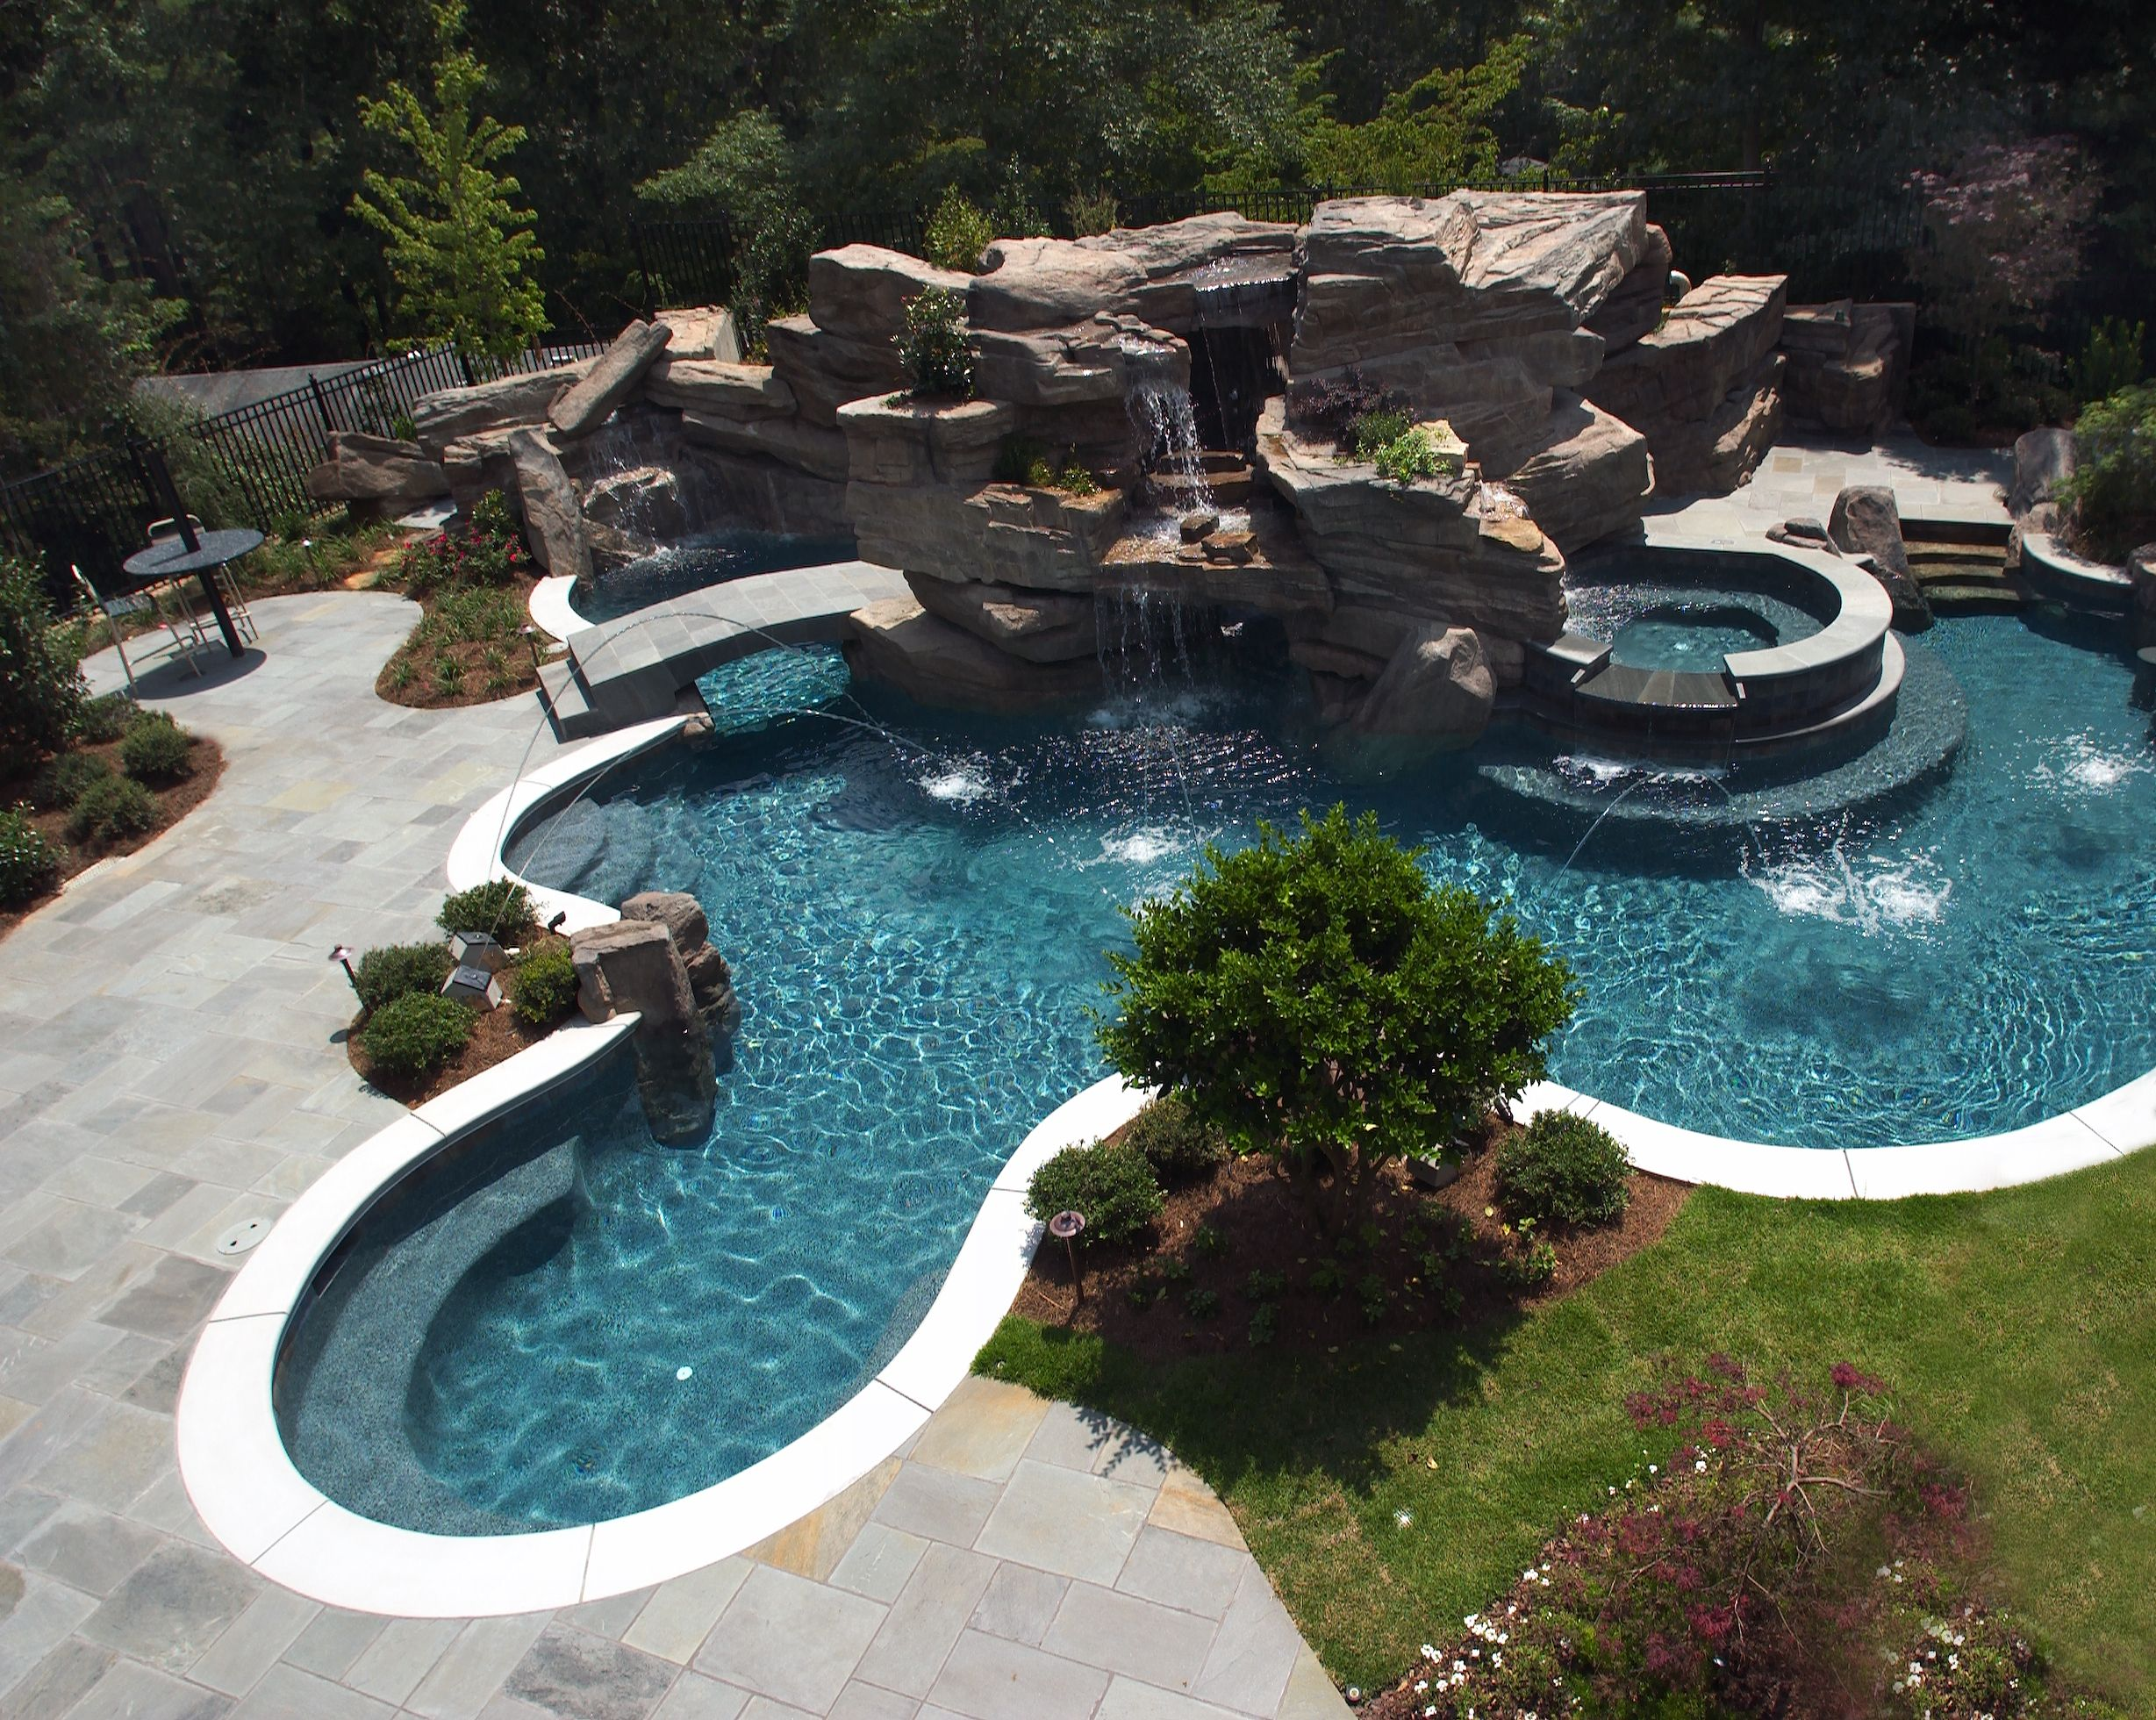 Elaborate Swimming Pool Featuring Large Grotto Waterfall And Tube